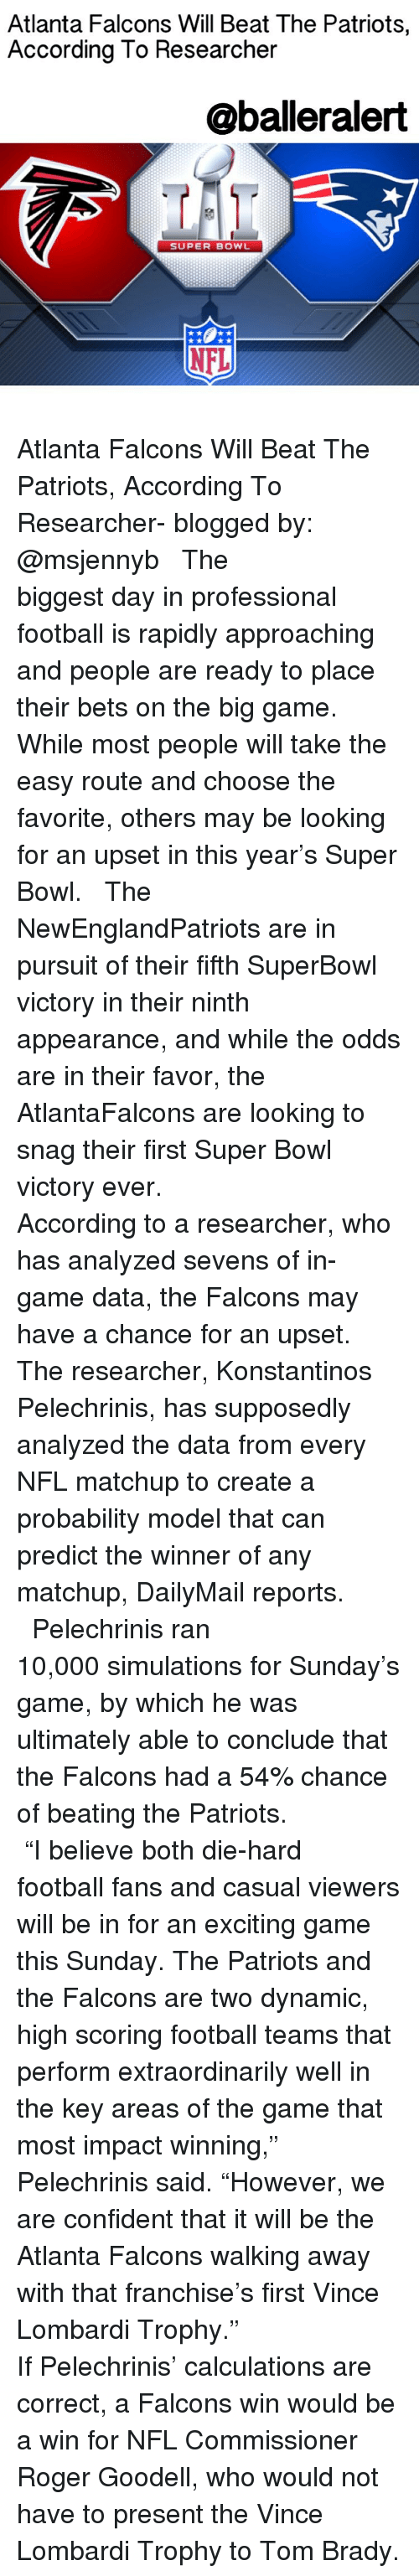 """Memes, Roger Goodell, and Vince Lombardi: Atlanta Falcons Will Beat The Patriots,  According To Researcher  @balleralert  SUPER BOWL  NFL Atlanta Falcons Will Beat The Patriots, According To Researcher- blogged by: @msjennyb ⠀⠀⠀⠀⠀⠀⠀⠀⠀ ⠀⠀⠀⠀⠀⠀⠀⠀⠀ The biggest day in professional football is rapidly approaching and people are ready to place their bets on the big game. While most people will take the easy route and choose the favorite, others may be looking for an upset in this year's Super Bowl. ⠀⠀⠀⠀⠀⠀⠀⠀⠀ ⠀⠀⠀⠀⠀⠀⠀⠀⠀ The NewEnglandPatriots are in pursuit of their fifth SuperBowl victory in their ninth appearance, and while the odds are in their favor, the AtlantaFalcons are looking to snag their first Super Bowl victory ever. ⠀⠀⠀⠀⠀⠀⠀⠀⠀ ⠀⠀⠀⠀⠀⠀⠀⠀⠀ According to a researcher, who has analyzed sevens of in-game data, the Falcons may have a chance for an upset. The researcher, Konstantinos Pelechrinis, has supposedly analyzed the data from every NFL matchup to create a probability model that can predict the winner of any matchup, DailyMail reports. ⠀⠀⠀⠀⠀⠀⠀⠀⠀ ⠀⠀⠀⠀⠀⠀⠀⠀⠀ Pelechrinis ran 10,000 simulations for Sunday's game, by which he was ultimately able to conclude that the Falcons had a 54% chance of beating the Patriots. ⠀⠀⠀⠀⠀⠀⠀⠀⠀ ⠀⠀⠀⠀⠀⠀⠀⠀⠀ """"I believe both die-hard football fans and casual viewers will be in for an exciting game this Sunday. The Patriots and the Falcons are two dynamic, high scoring football teams that perform extraordinarily well in the key areas of the game that most impact winning,"""" Pelechrinis said. """"However, we are confident that it will be the Atlanta Falcons walking away with that franchise's first Vince Lombardi Trophy."""" ⠀⠀⠀⠀⠀⠀⠀⠀⠀ ⠀⠀⠀⠀⠀⠀⠀⠀⠀ If Pelechrinis' calculations are correct, a Falcons win would be a win for NFL Commissioner Roger Goodell, who would not have to present the Vince Lombardi Trophy to Tom Brady."""